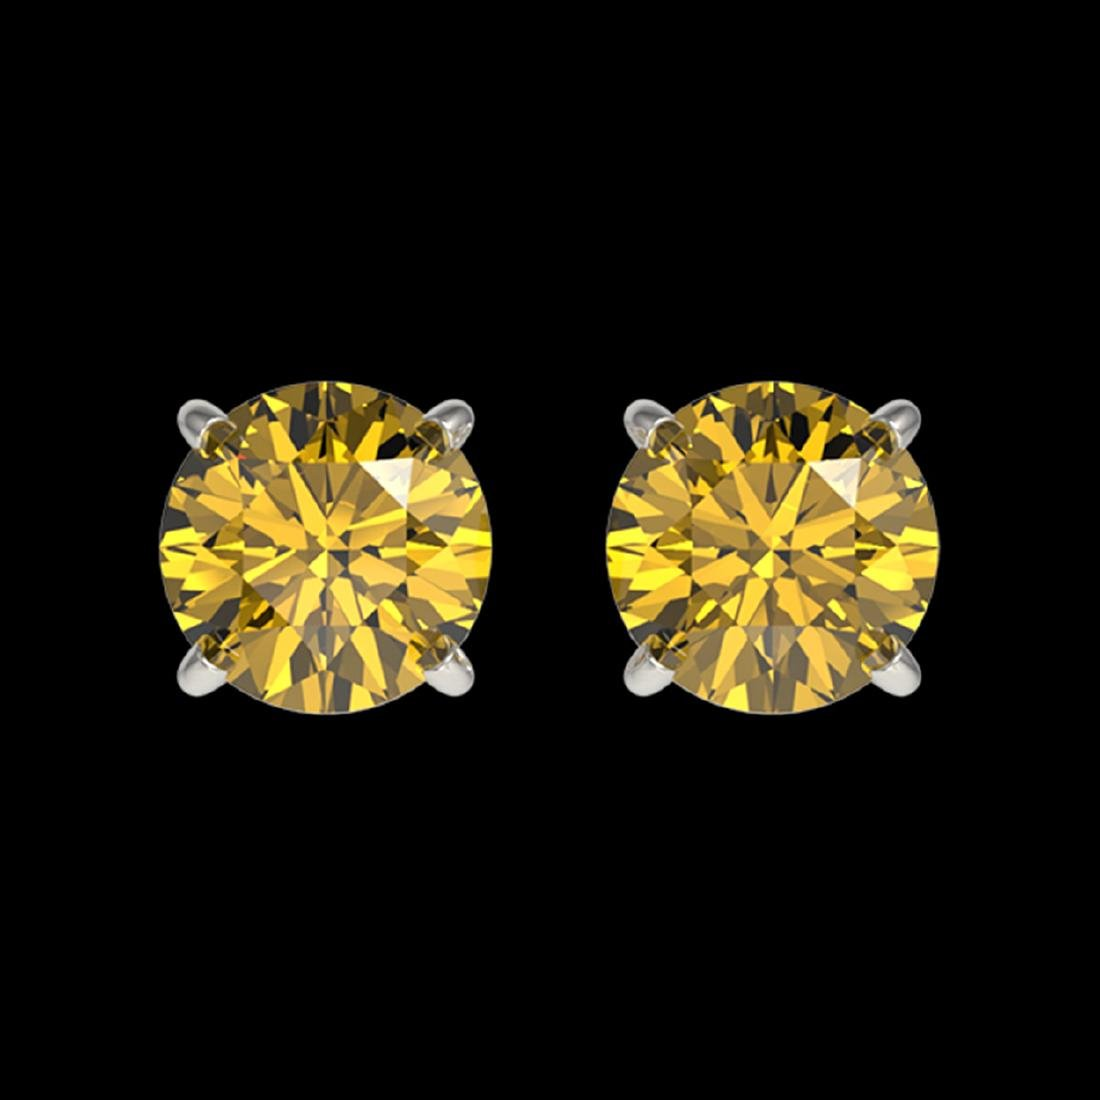 1.04 ctw Intense Yellow Diamond Stud Earrings 10K White